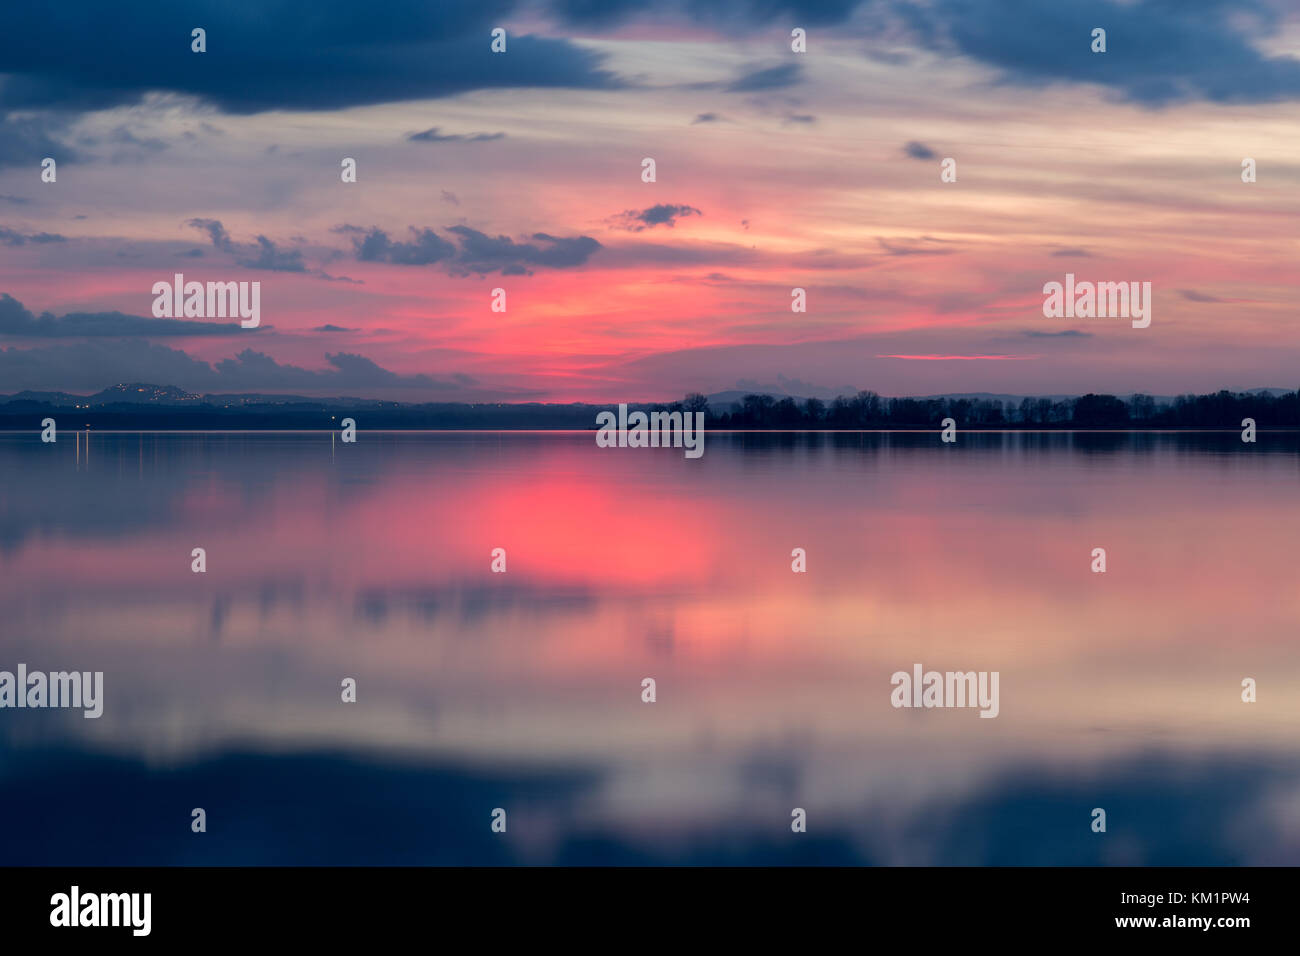 Perfectly symmetric reflection of  sunset on a  lake, with warm tones in the sky and water - Stock Image